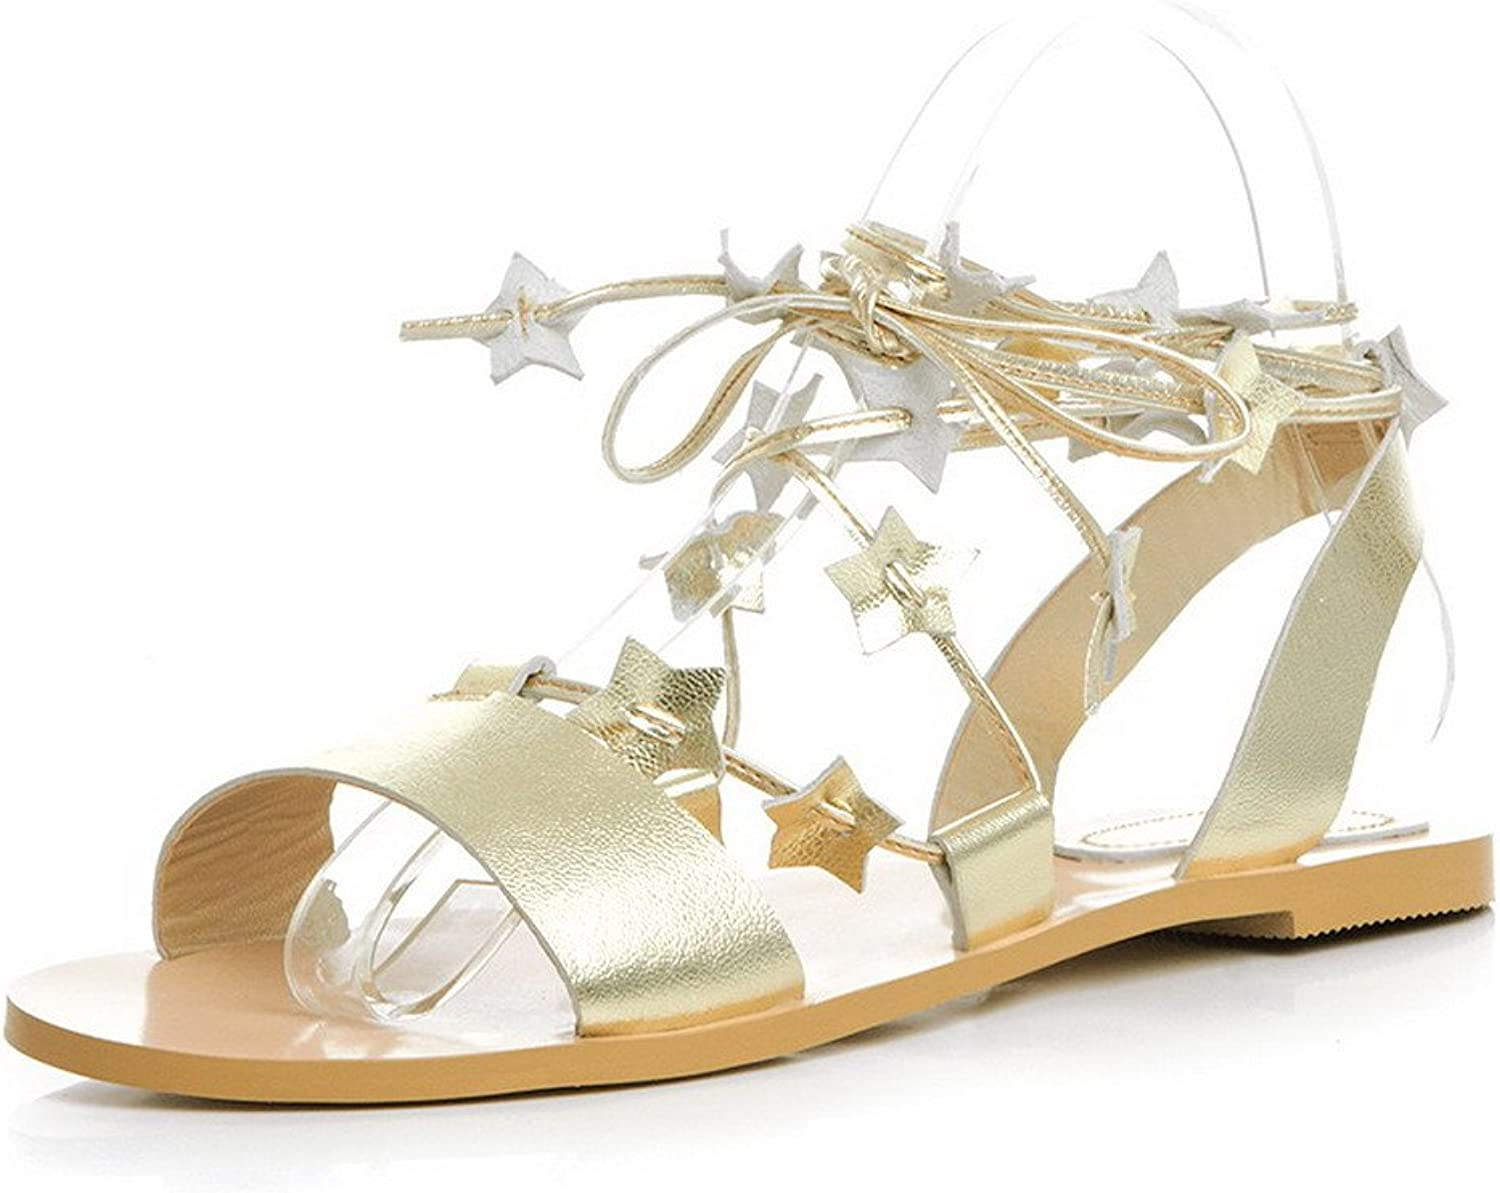 AmoonyFashion Women's Cow Leather Solid Lace-Up Open-Toe No-Heel Sandals